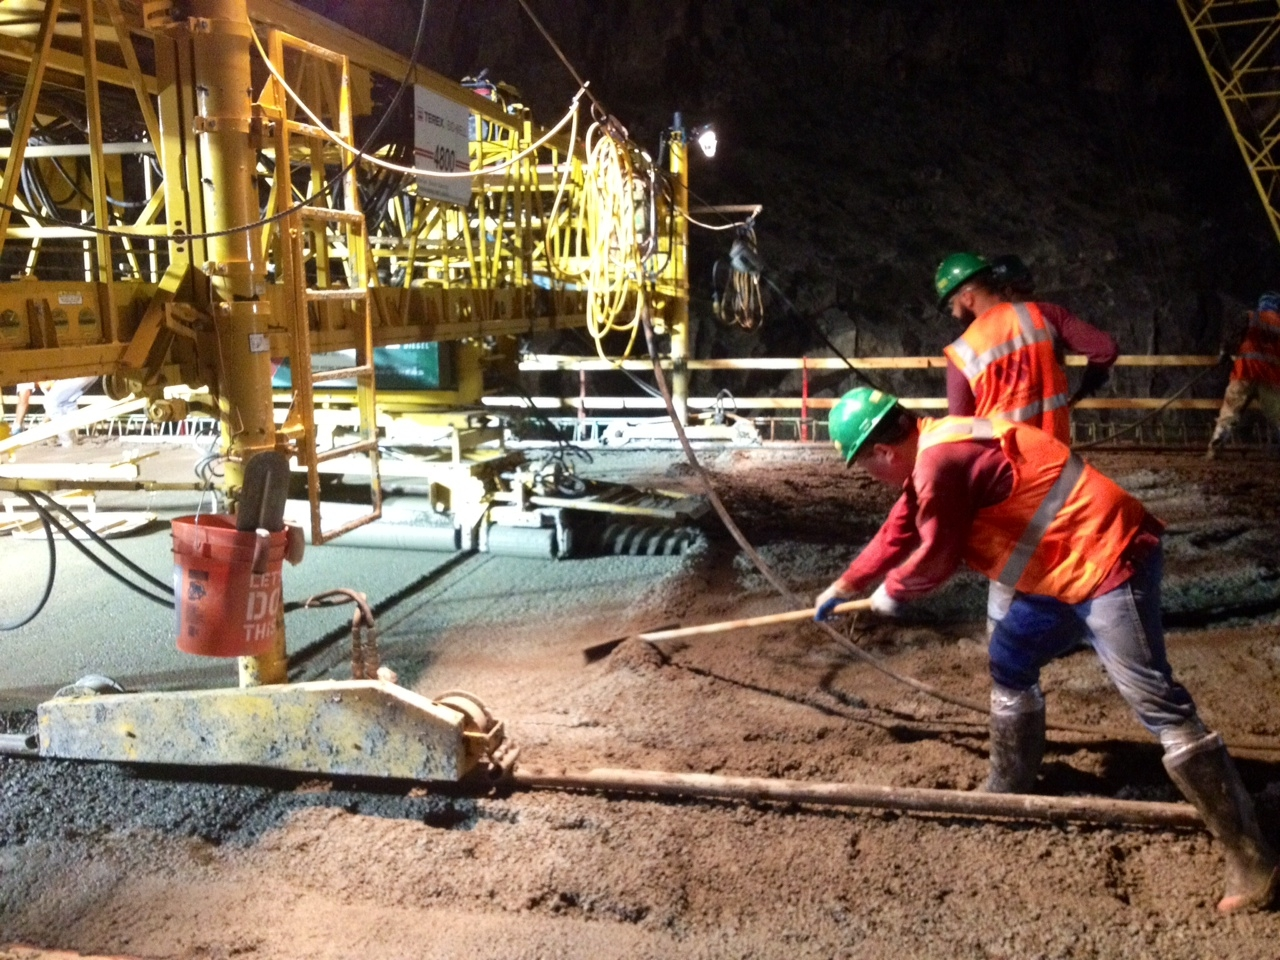 This June 2, 2015, photo shows ADOT workers doing the concrete deck pour on the Interstate 15 Virgin River Bridge No. 6, Virgin River Gorge, Arizona, June 2, 2015   Photo courtesy of ADOT, St. George News